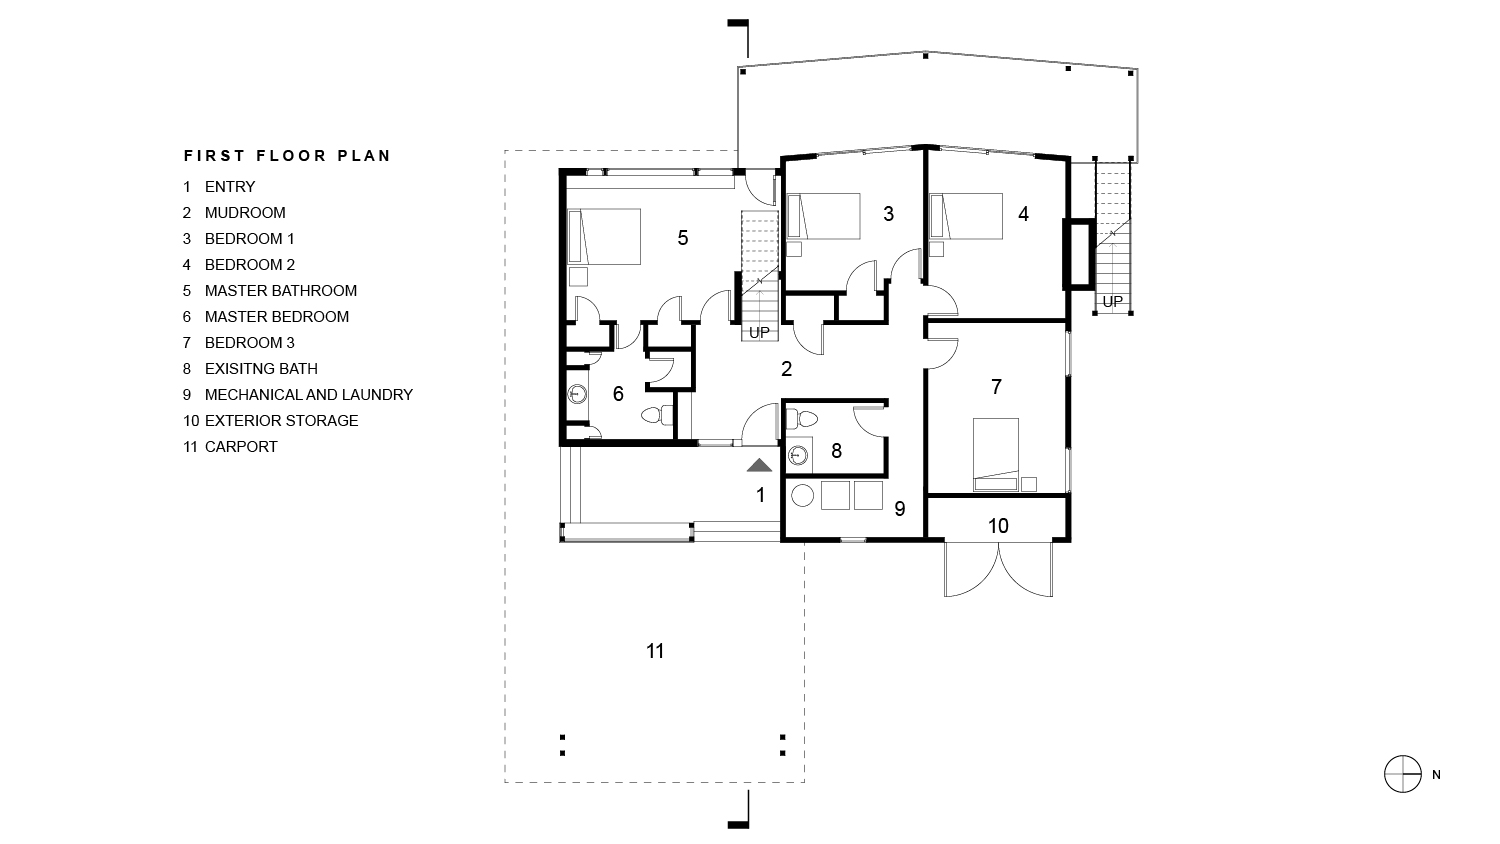 Tubman Residence First Floor Plan